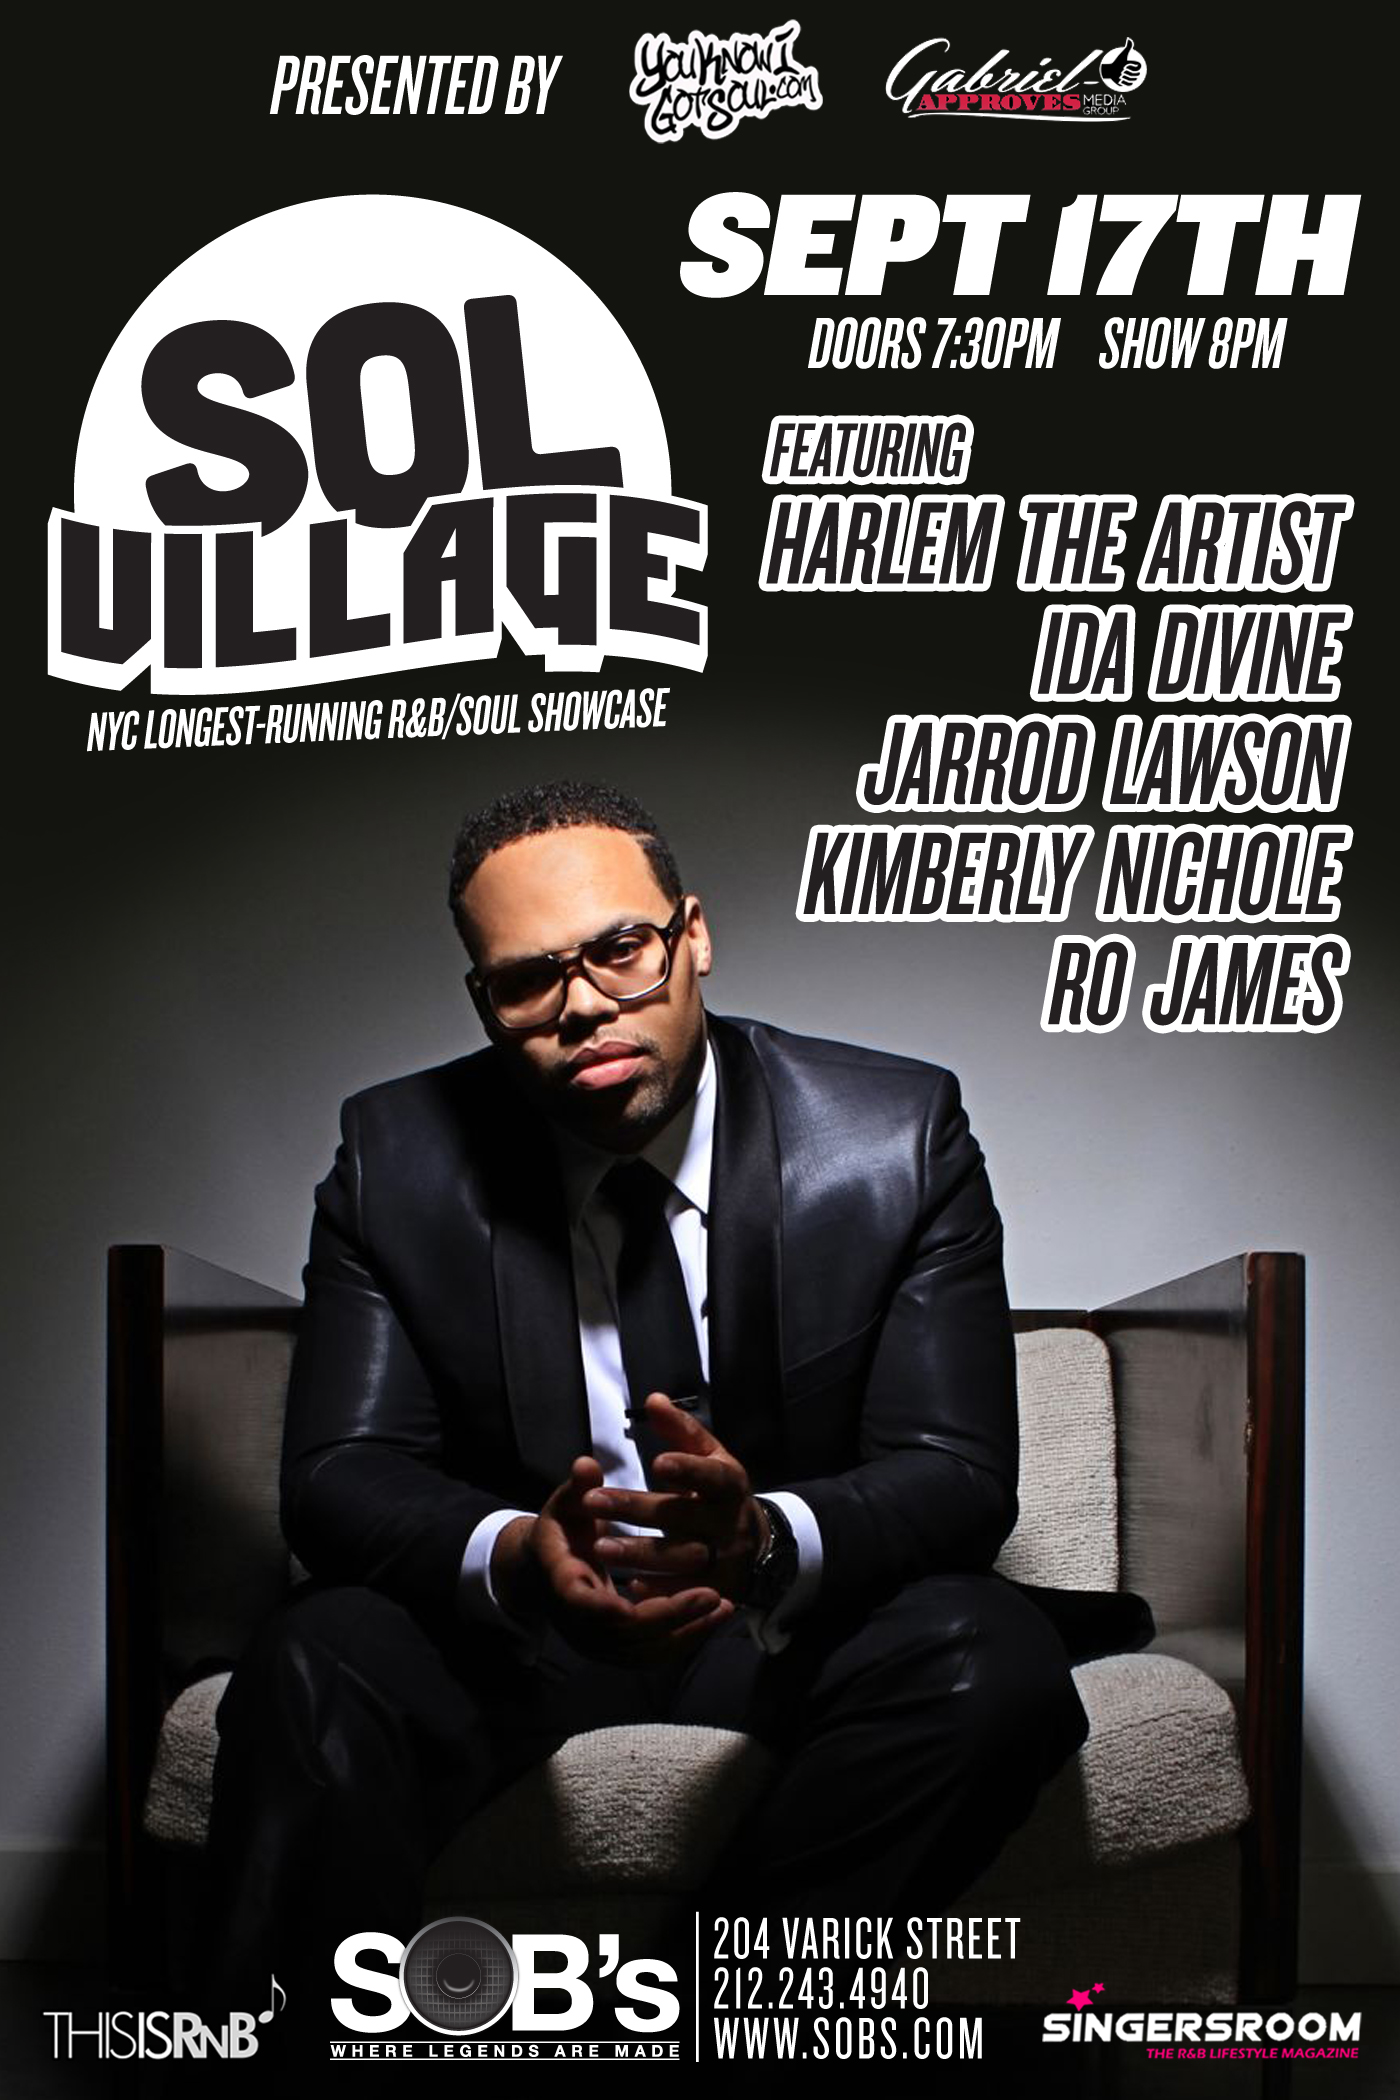 solvillage_sept17th